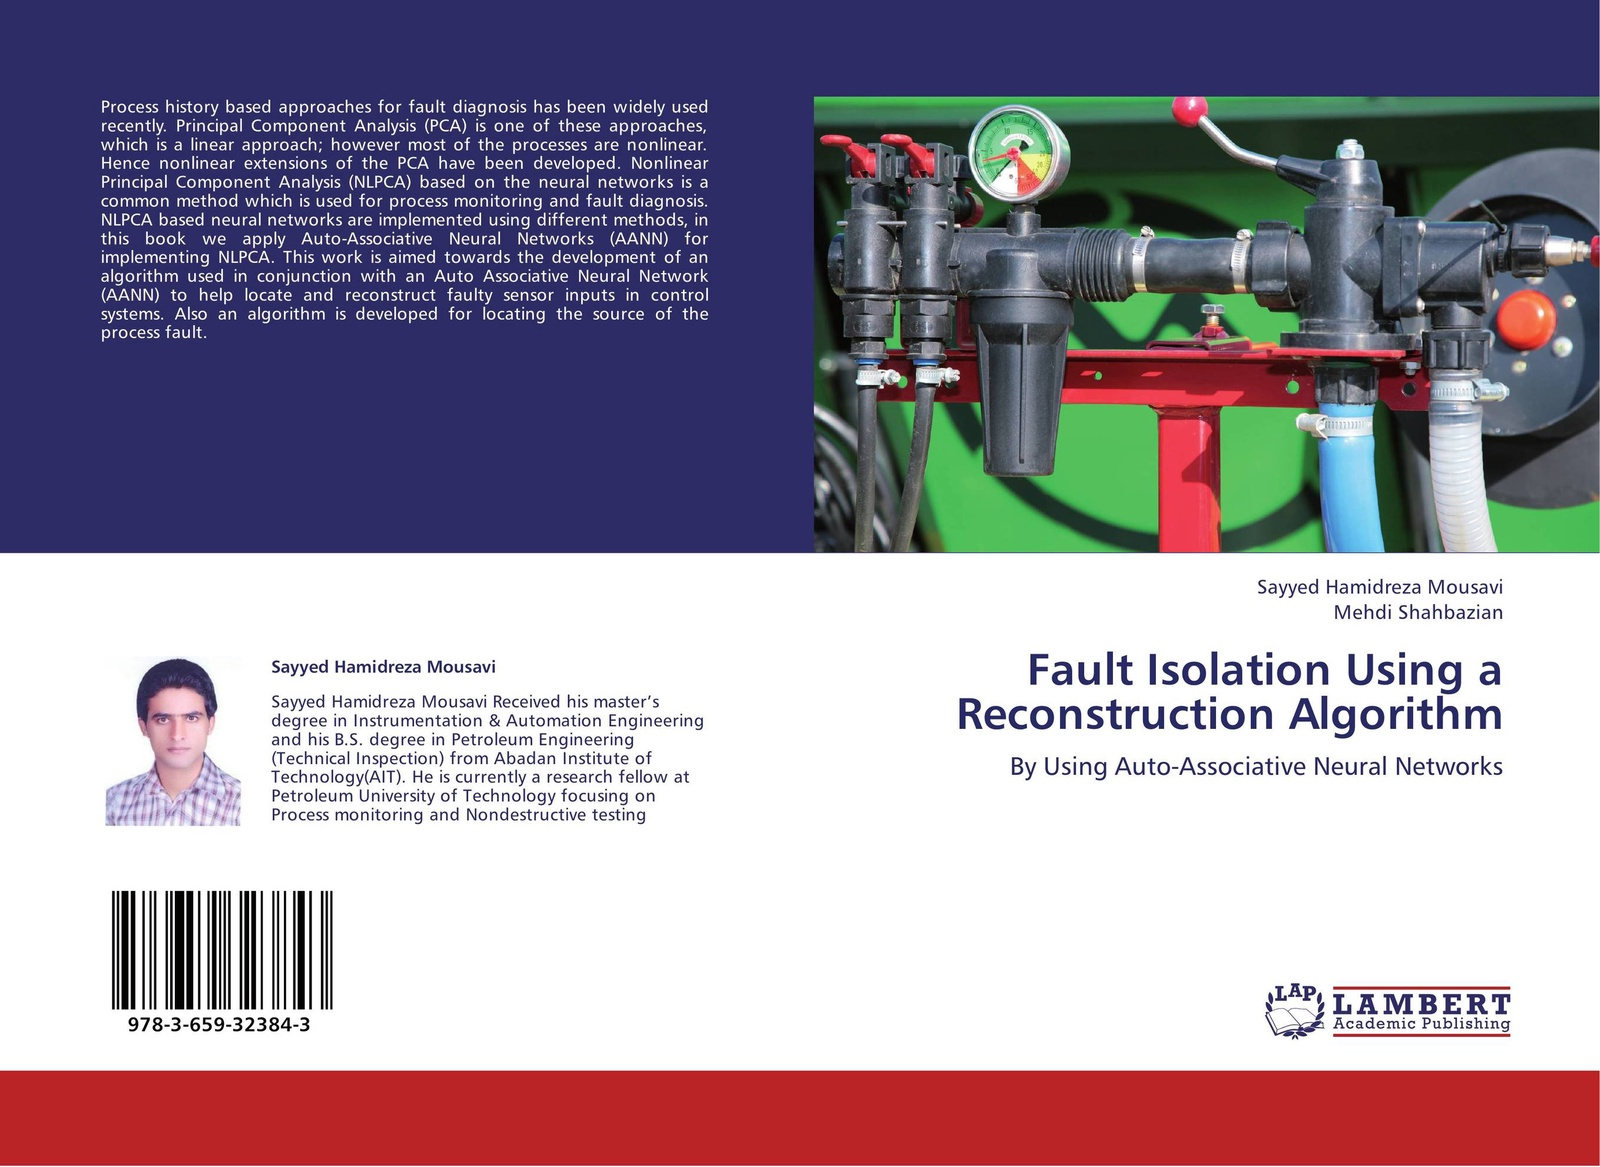 Sayyed Hamidreza Mousavi and Mehdi Shahbazian Fault Isolation Using a Reconstruction Algorithm цена